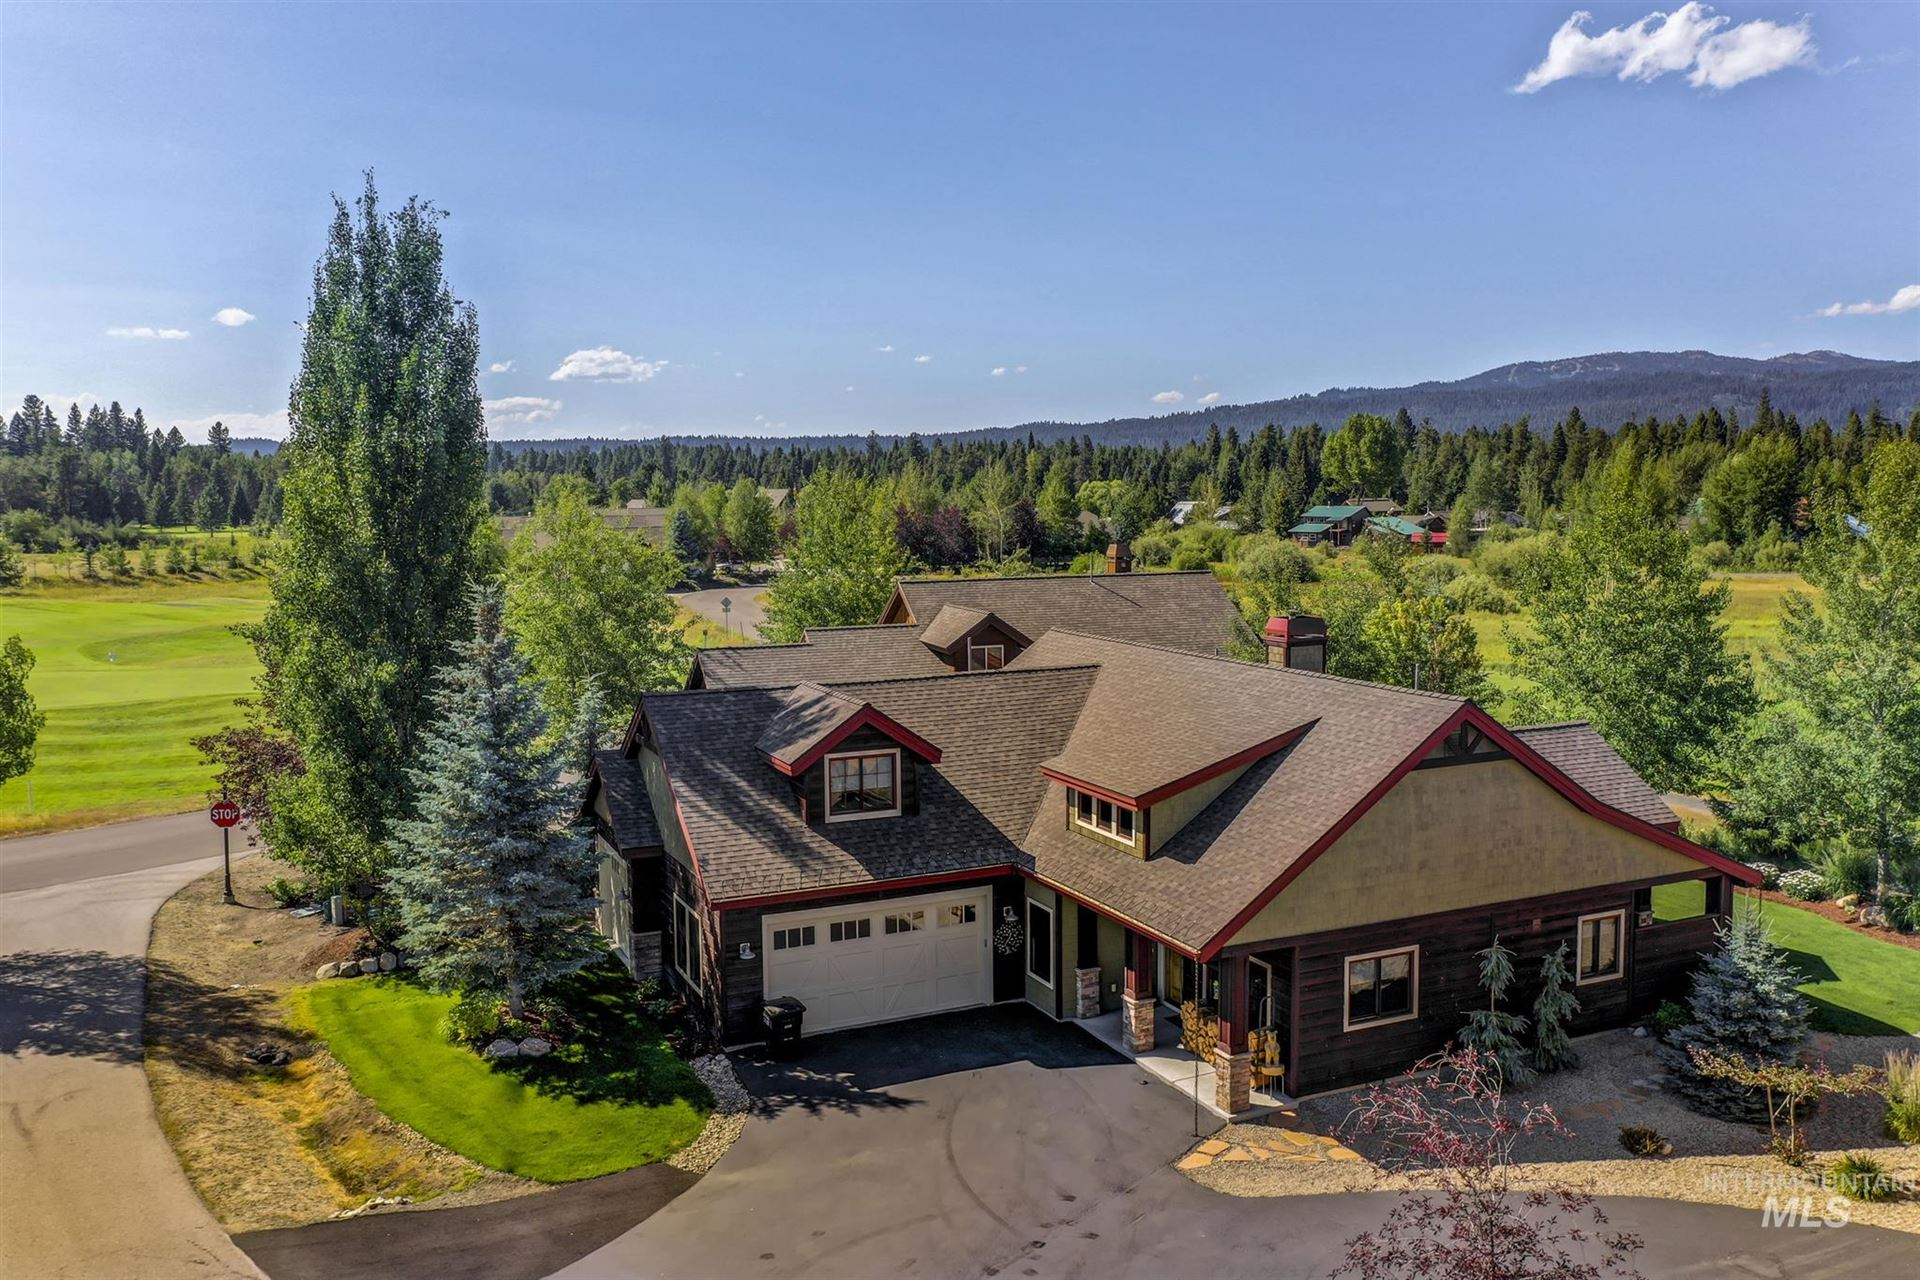 205 Meadow Lake Court, McCall, ID 83638 - MLS#: 98777105